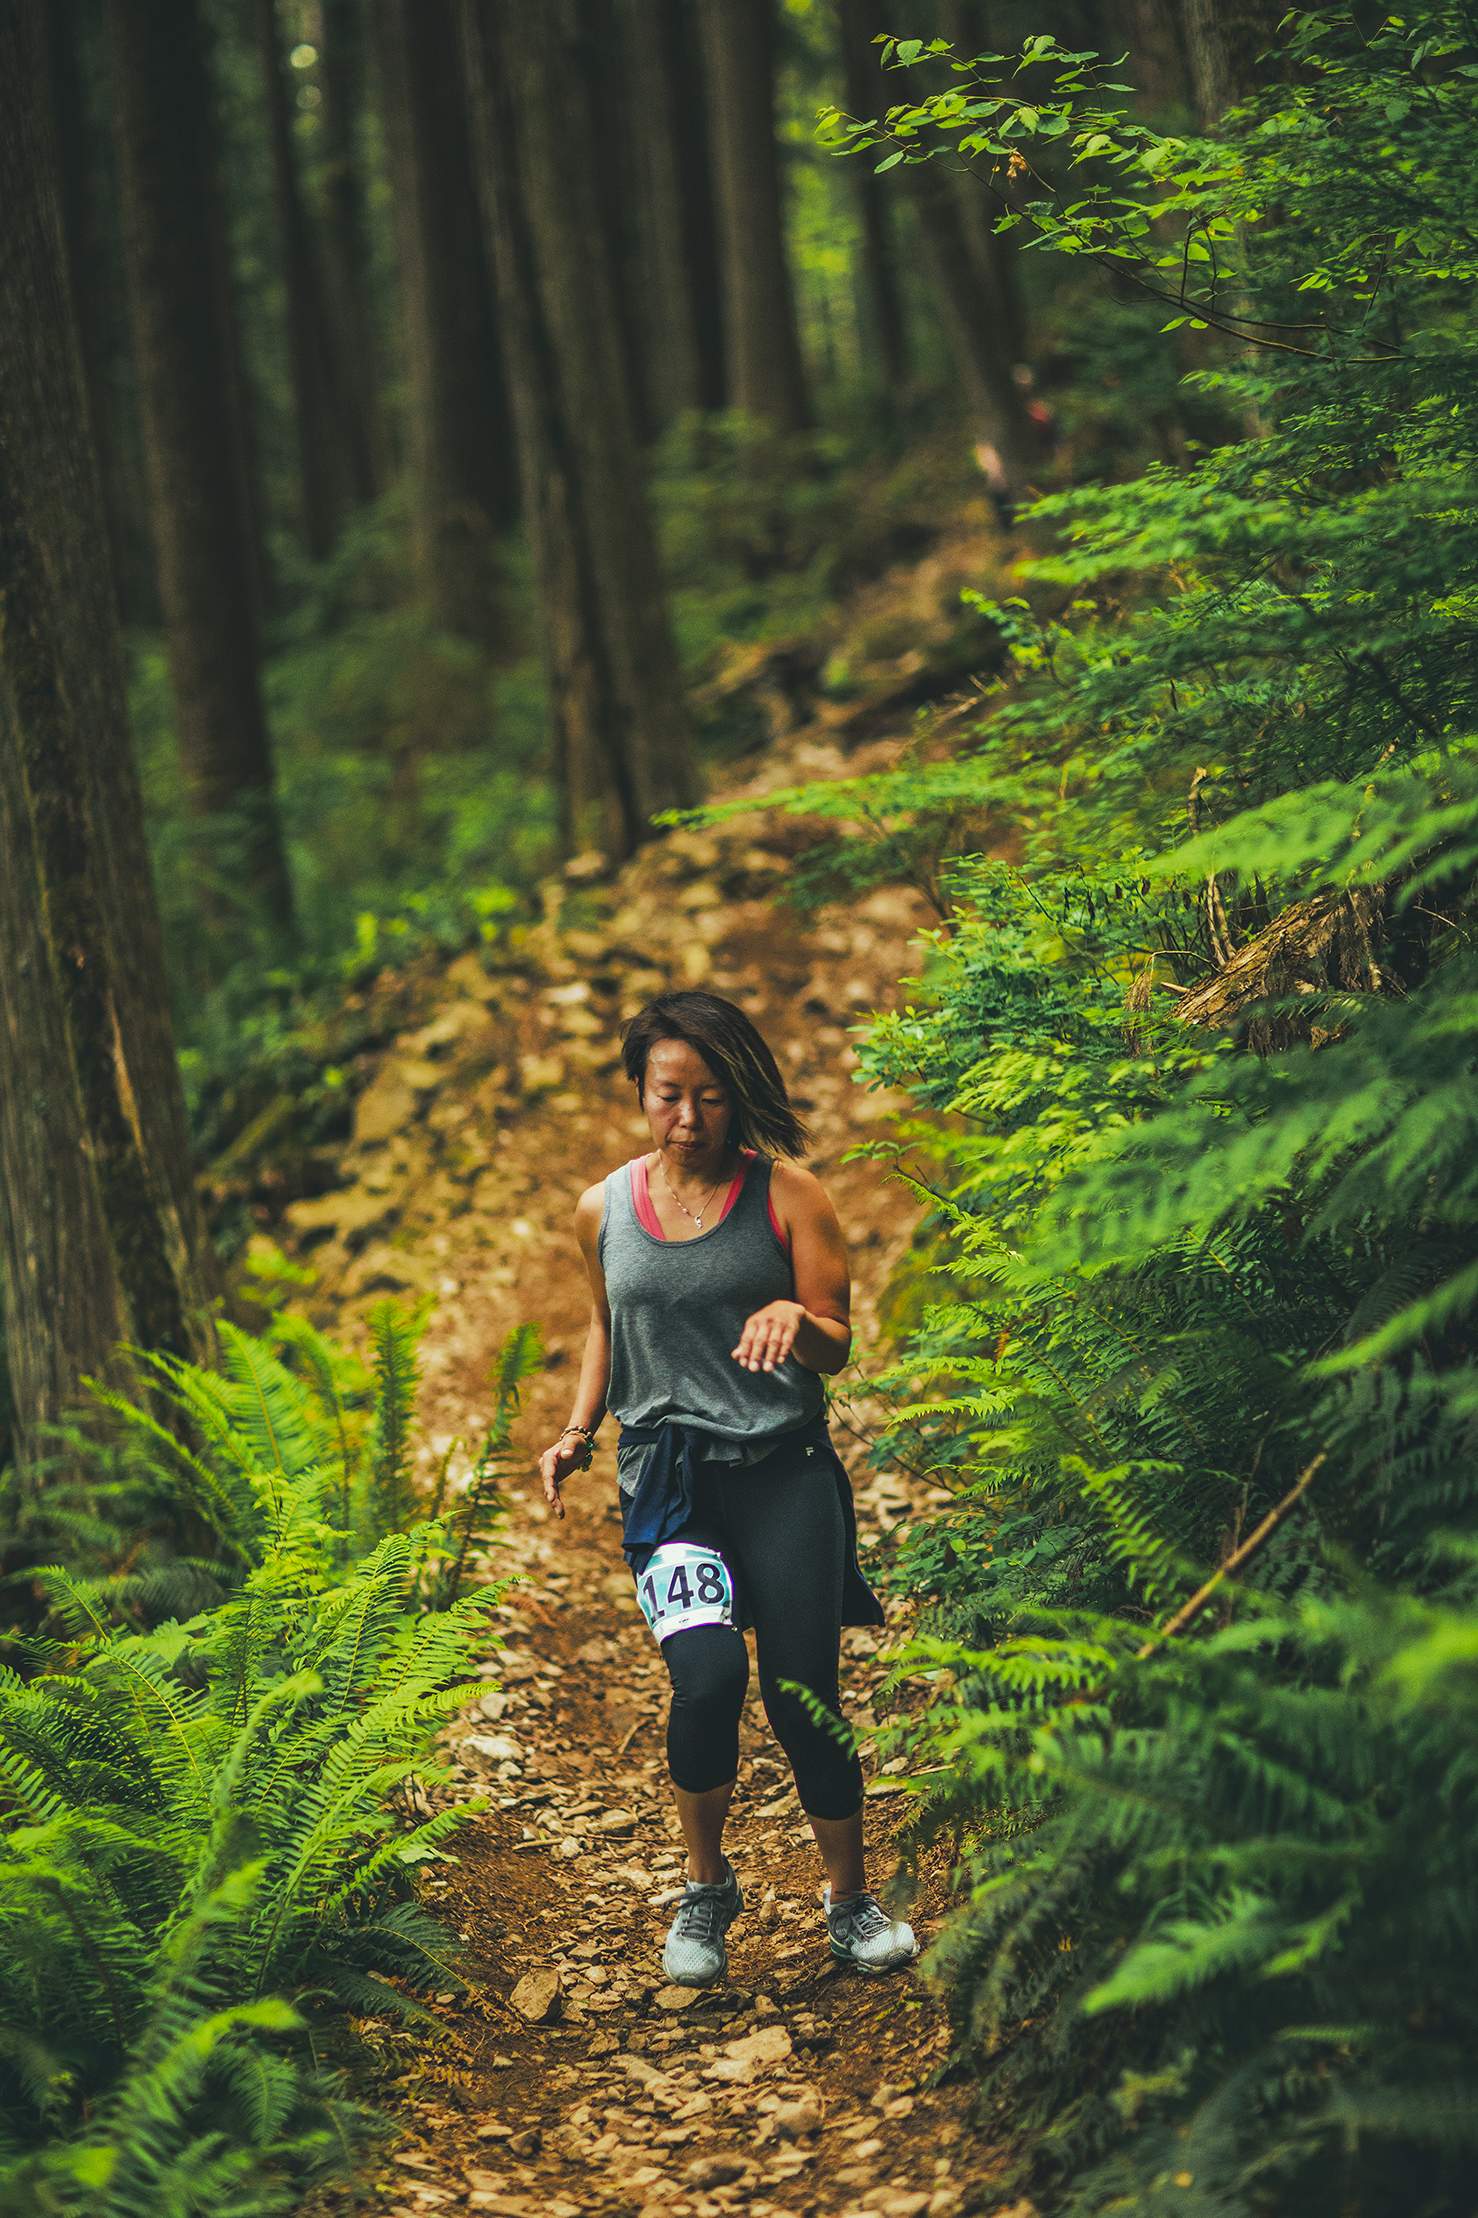 Fraser Valley Trail Races - Bear Mountain - IMG_2074 by Brice Ferre Studio - Vancouver Portrait Adventure and Athlete Photographer.jpg